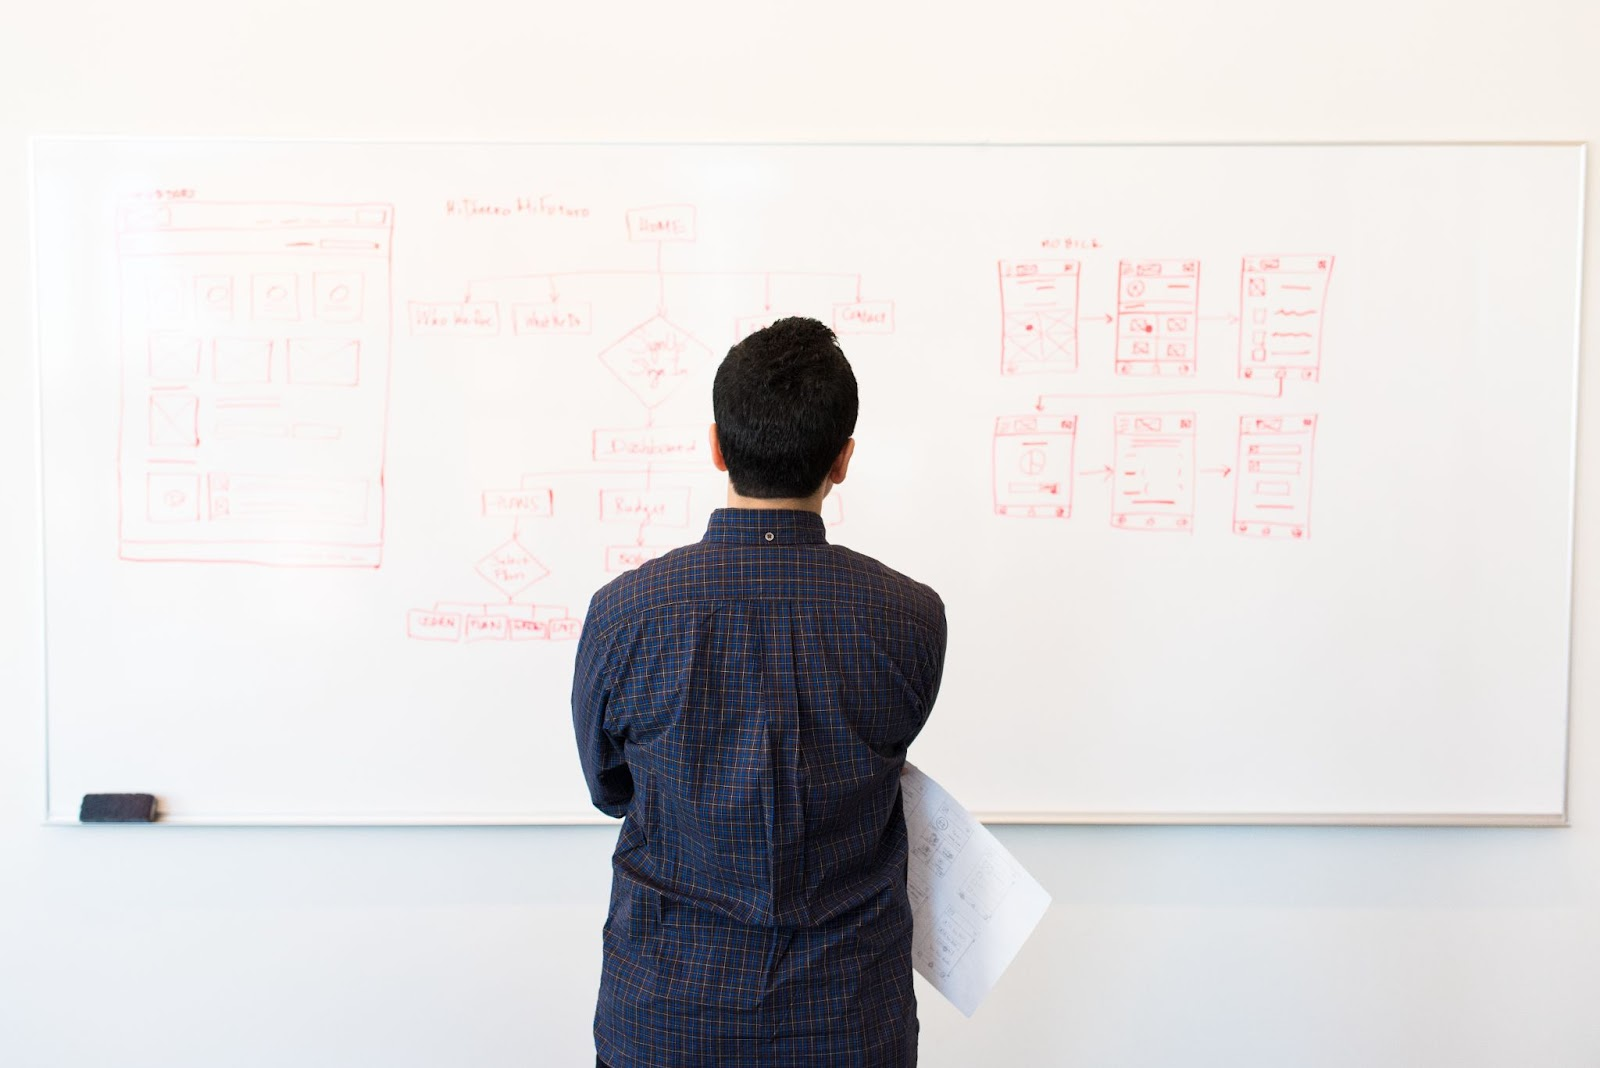 Man staring at whiteboard that has diagrams in red ink on it.